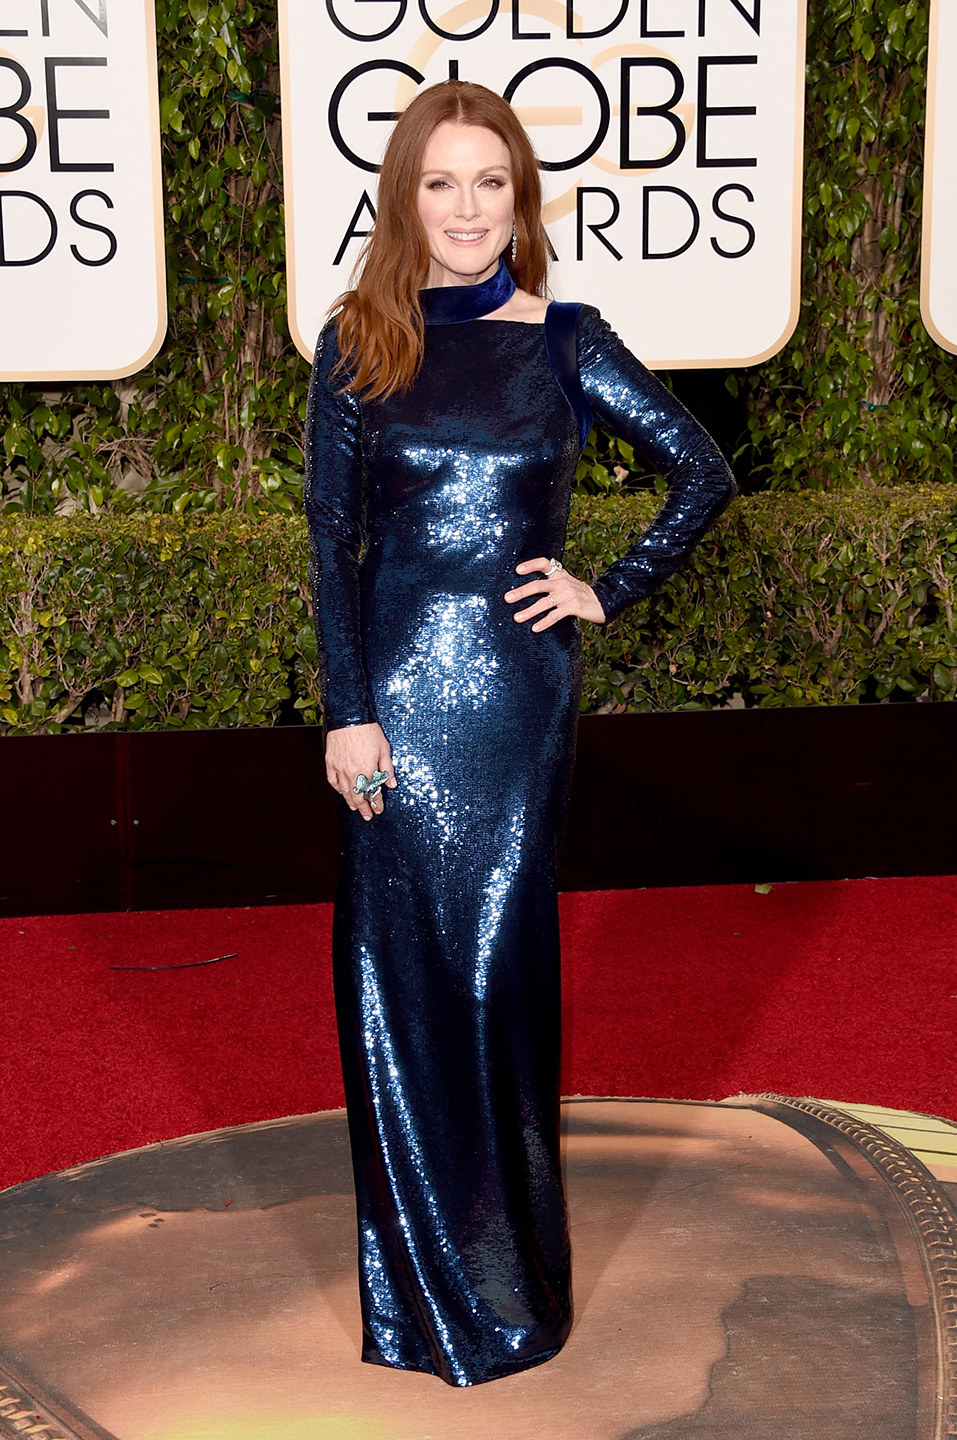 golden-globes-2016-julianne-moore.jpg (5.79 Kb)